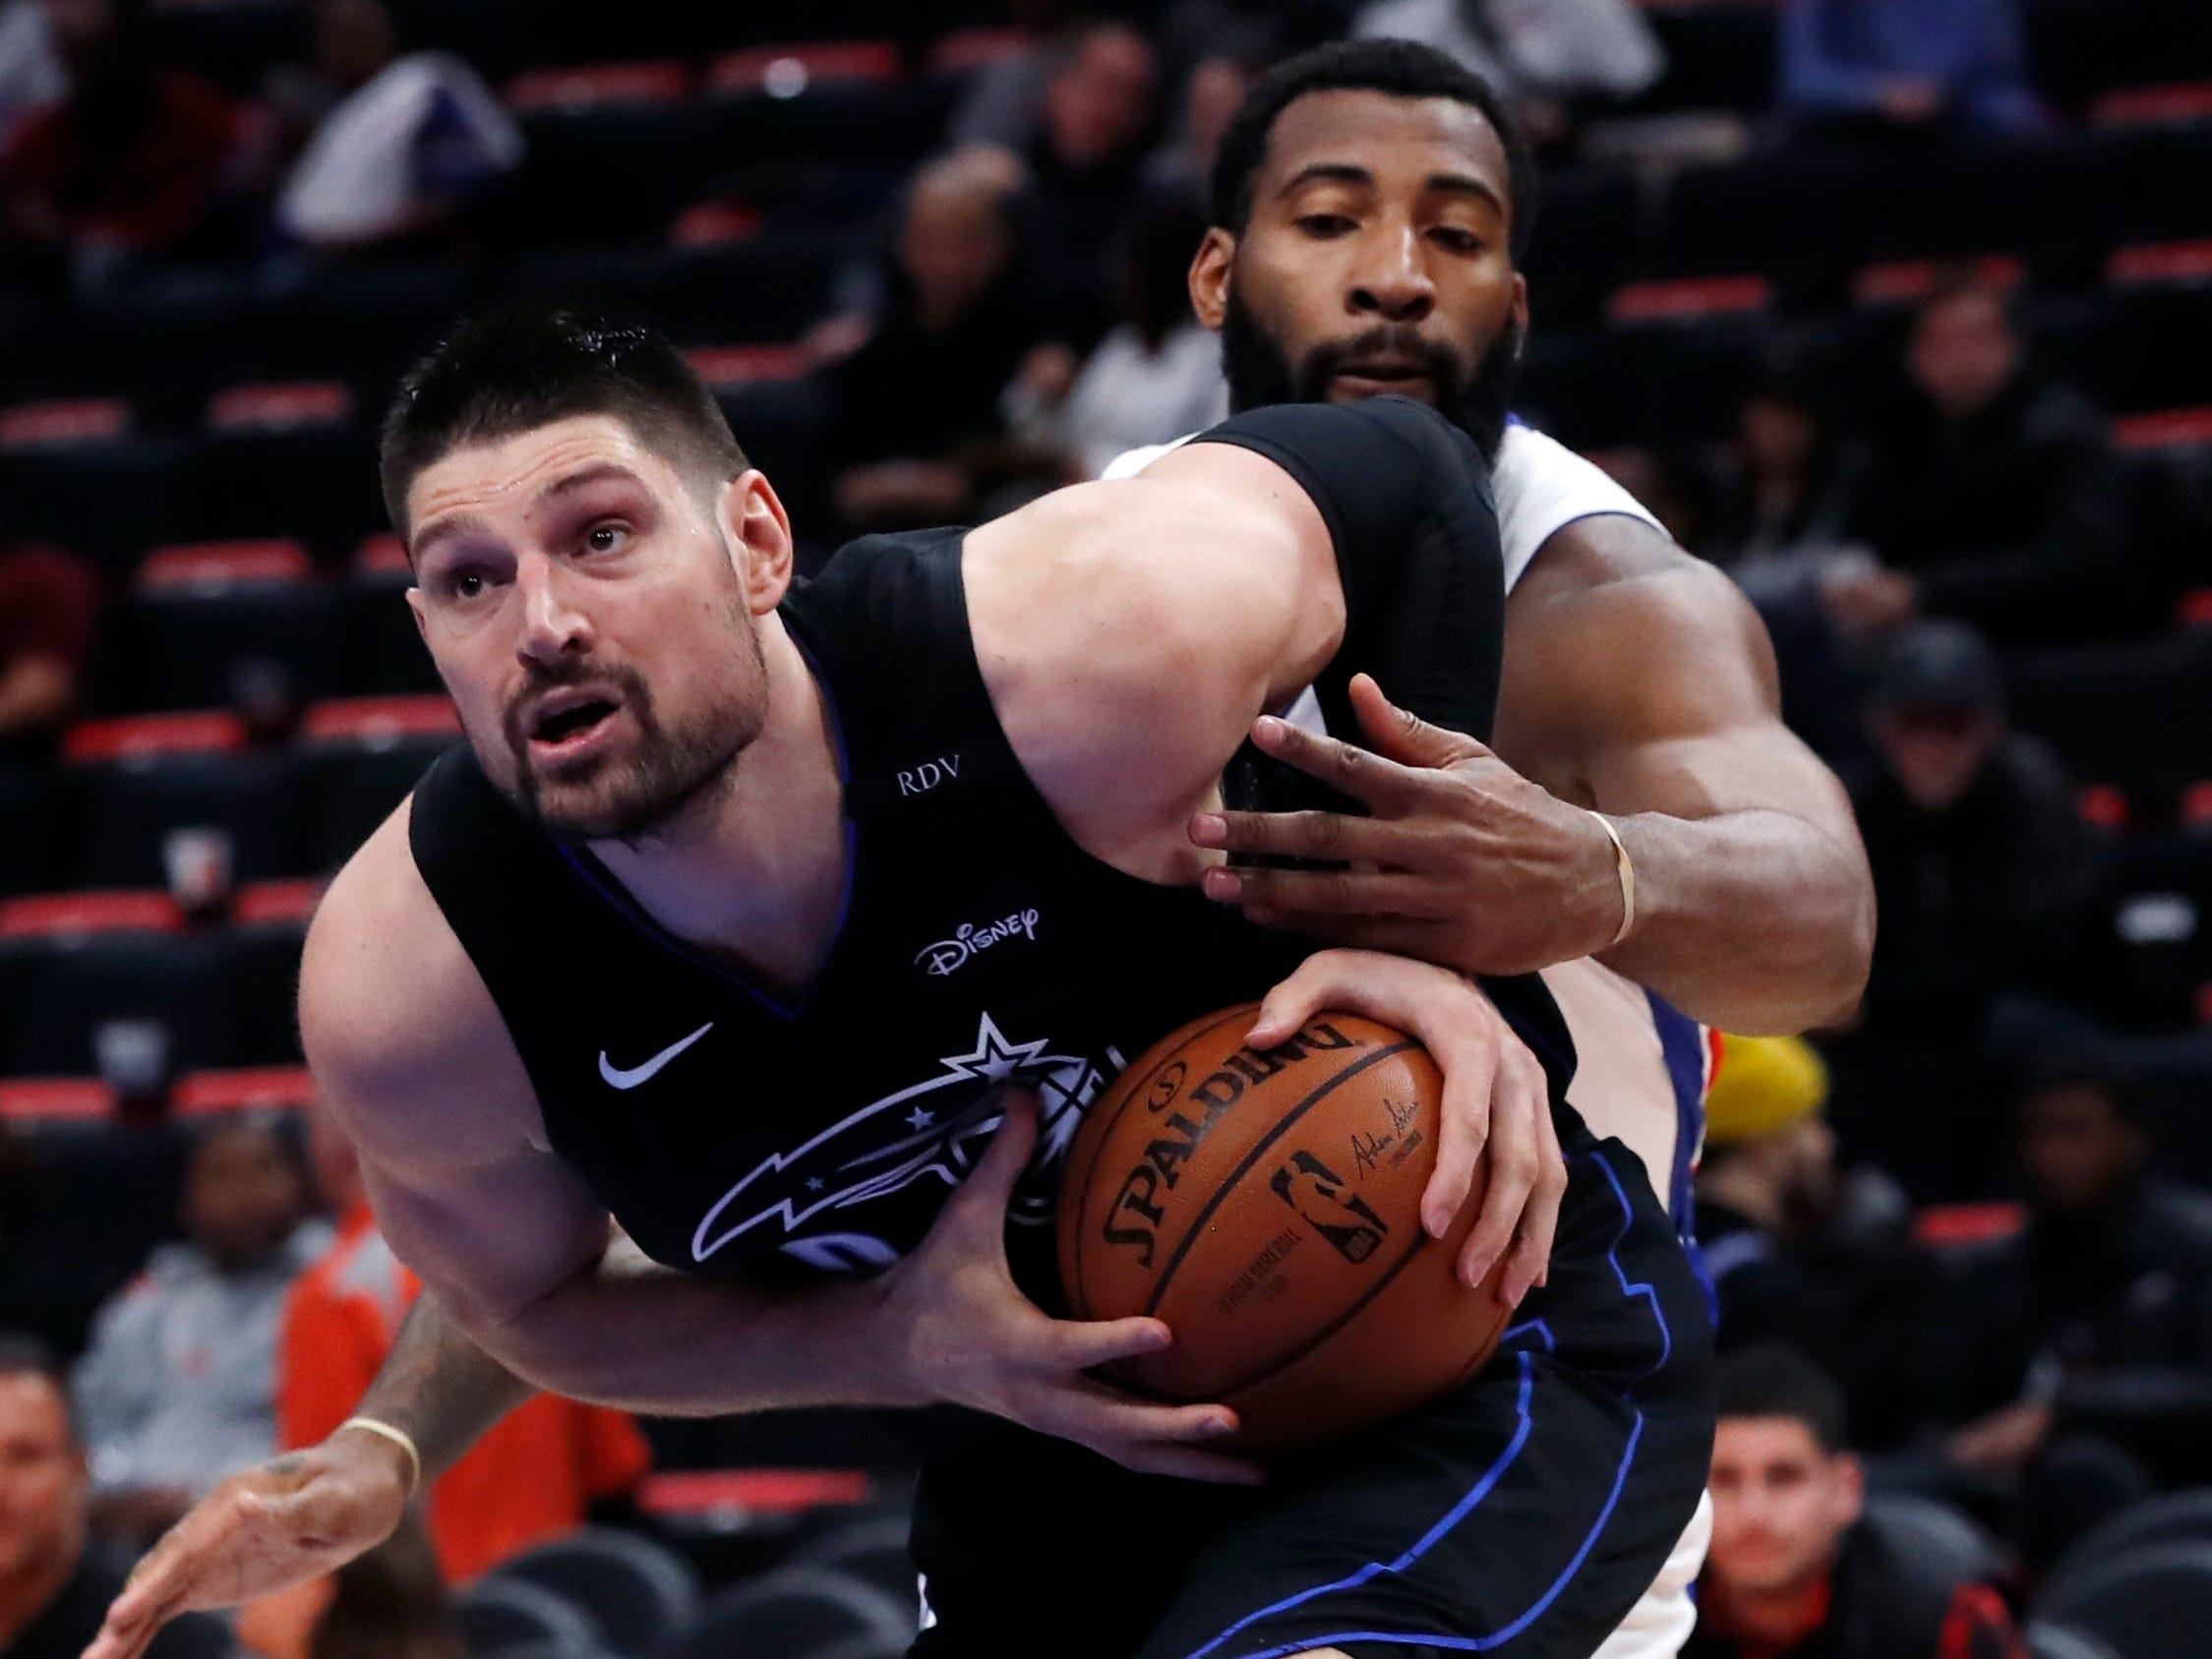 Orlando Magic center Nikola Vucevic (9) is fouled by Detroit Pistons center Andre Drummond during the second half.